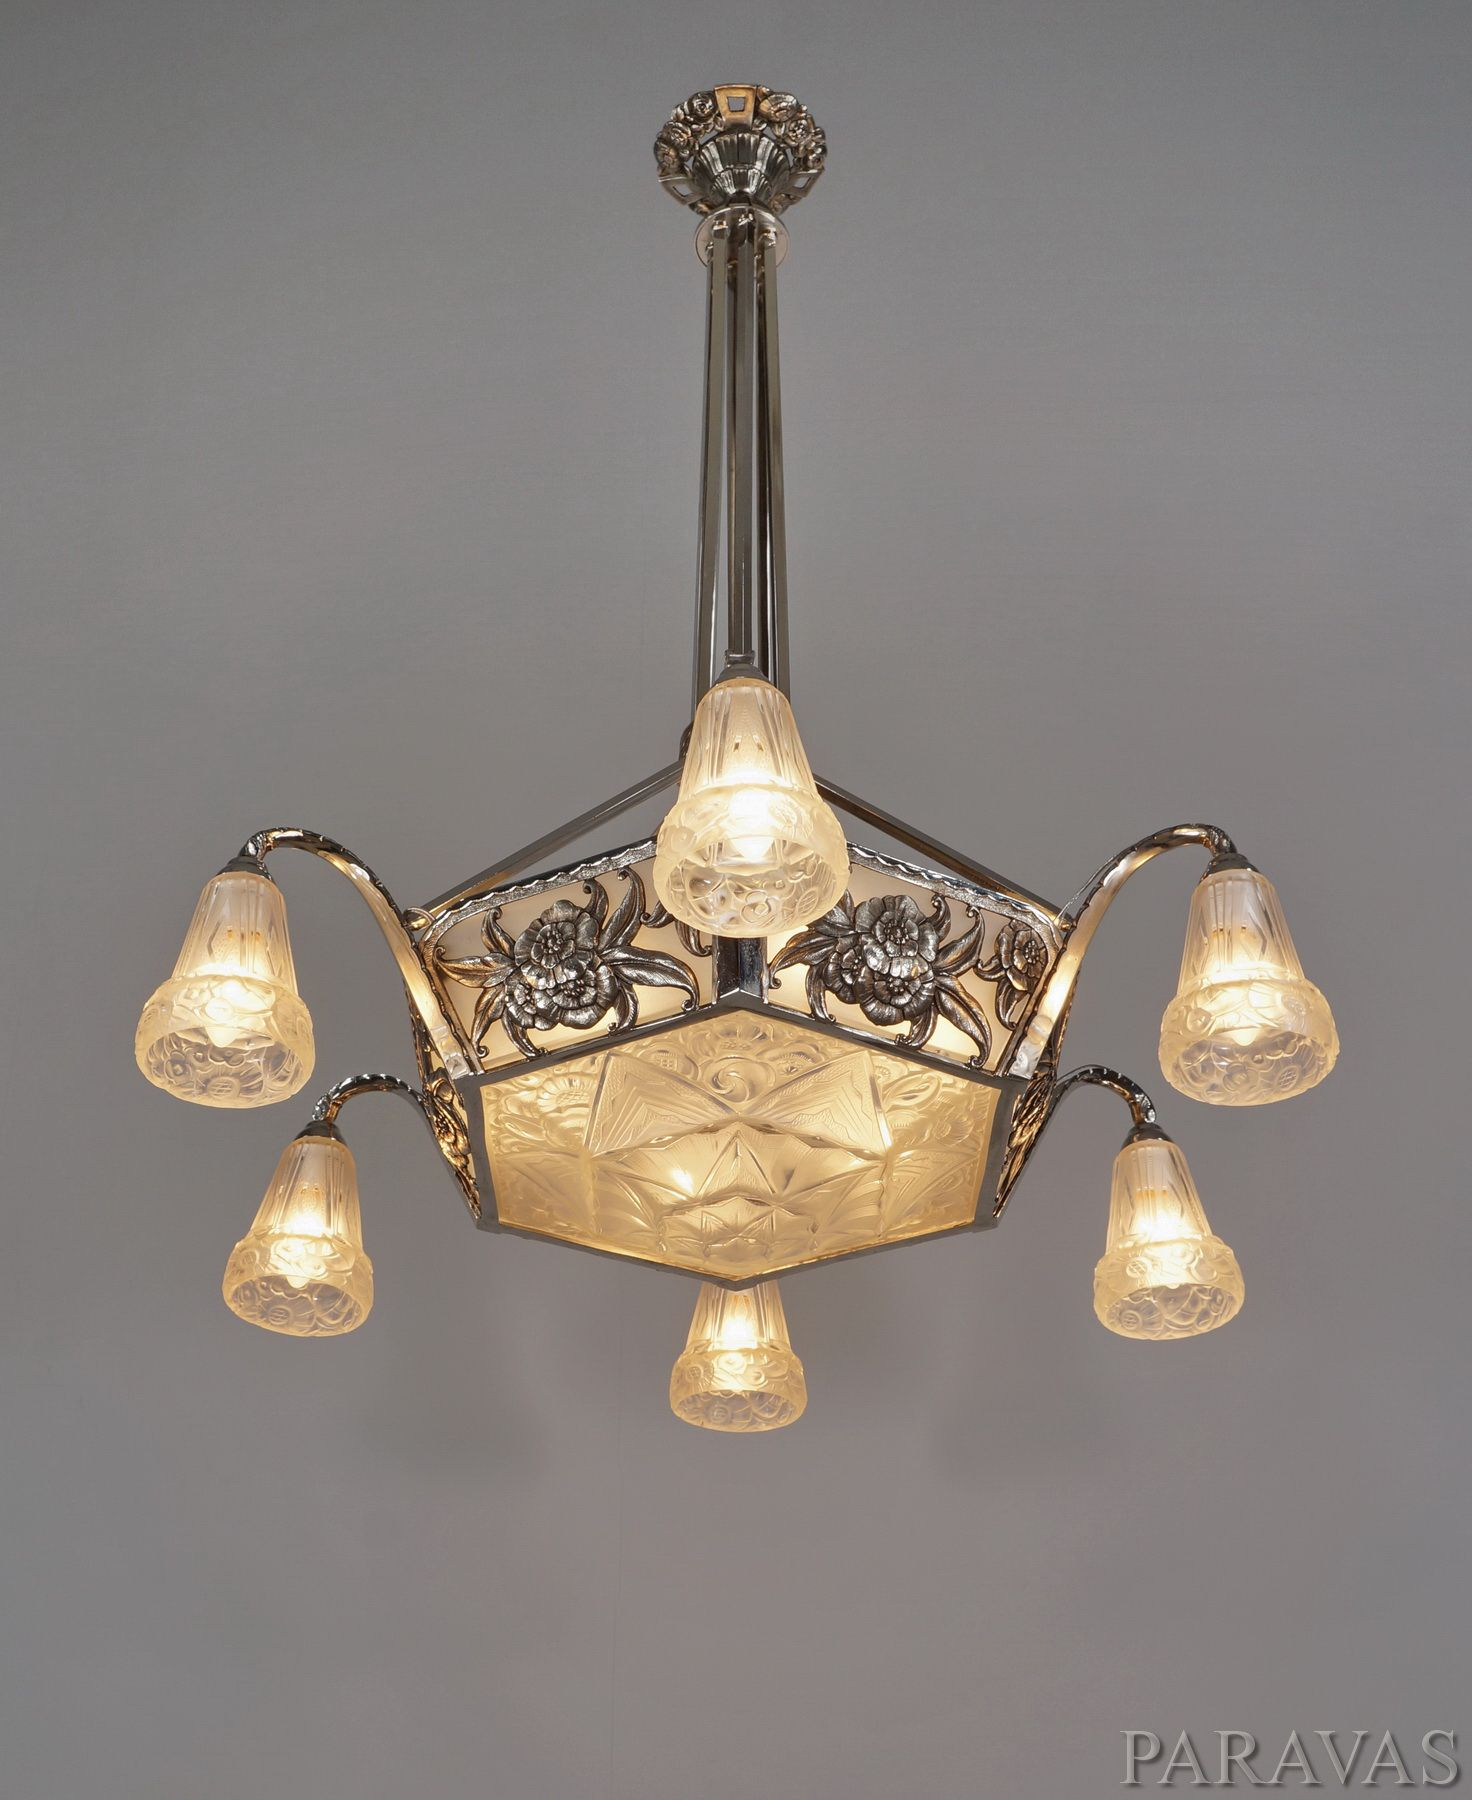 Ollier hanots large 1930 french art deco chandelier paravas ebay ollier hanots large 1930 french art deco chandelier paravas ebay arubaitofo Choice Image